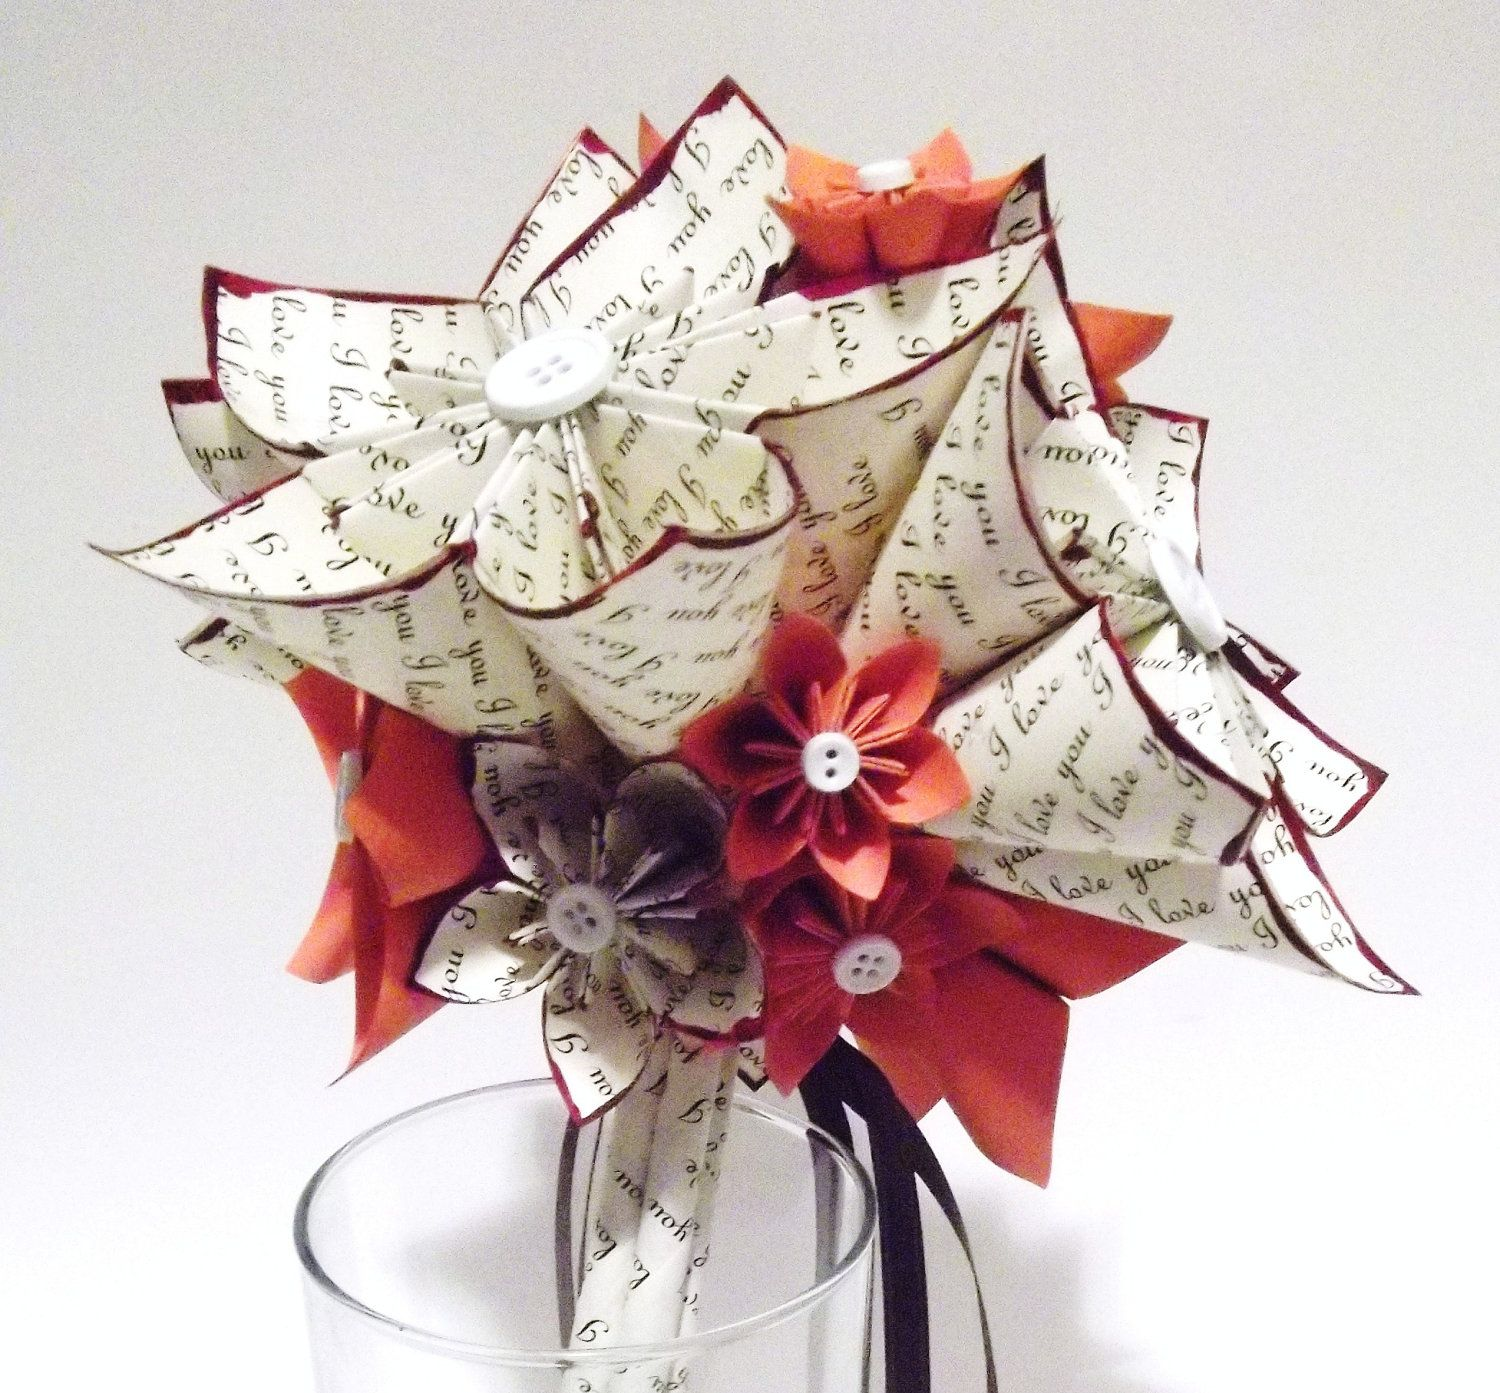 I Love You Paper Flower Wedding Bouquet- 8 inch, 15 flowers, origami ...